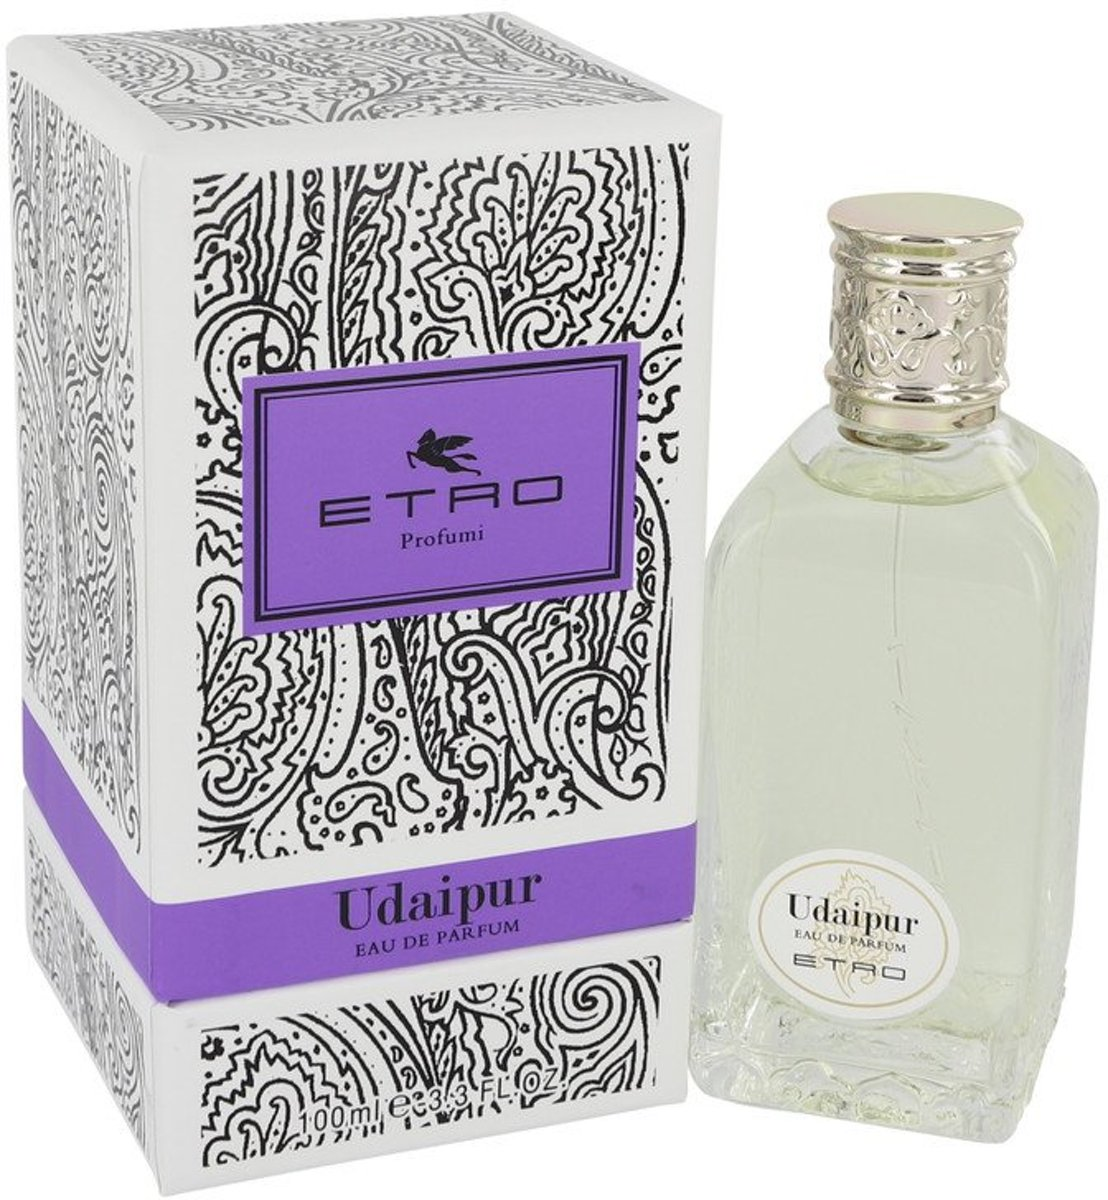 ETRO Udaipur Eau de parfum spray 100 ml